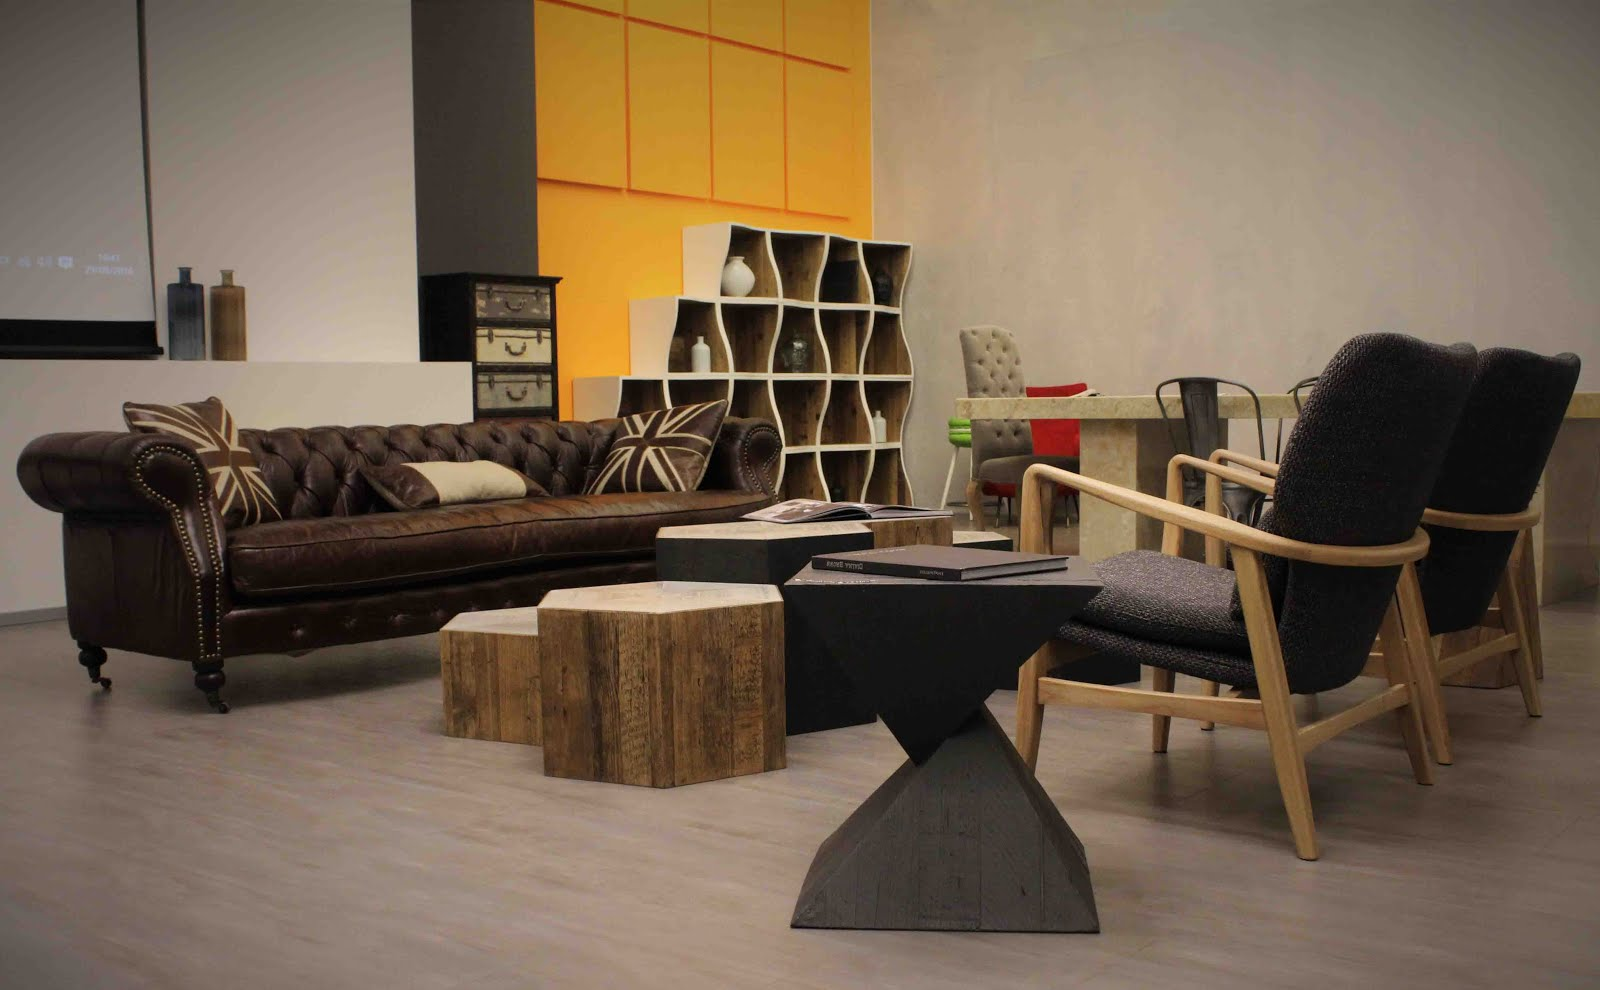 Arredo e design dialma brown arreda il food loft di for Dialma brown